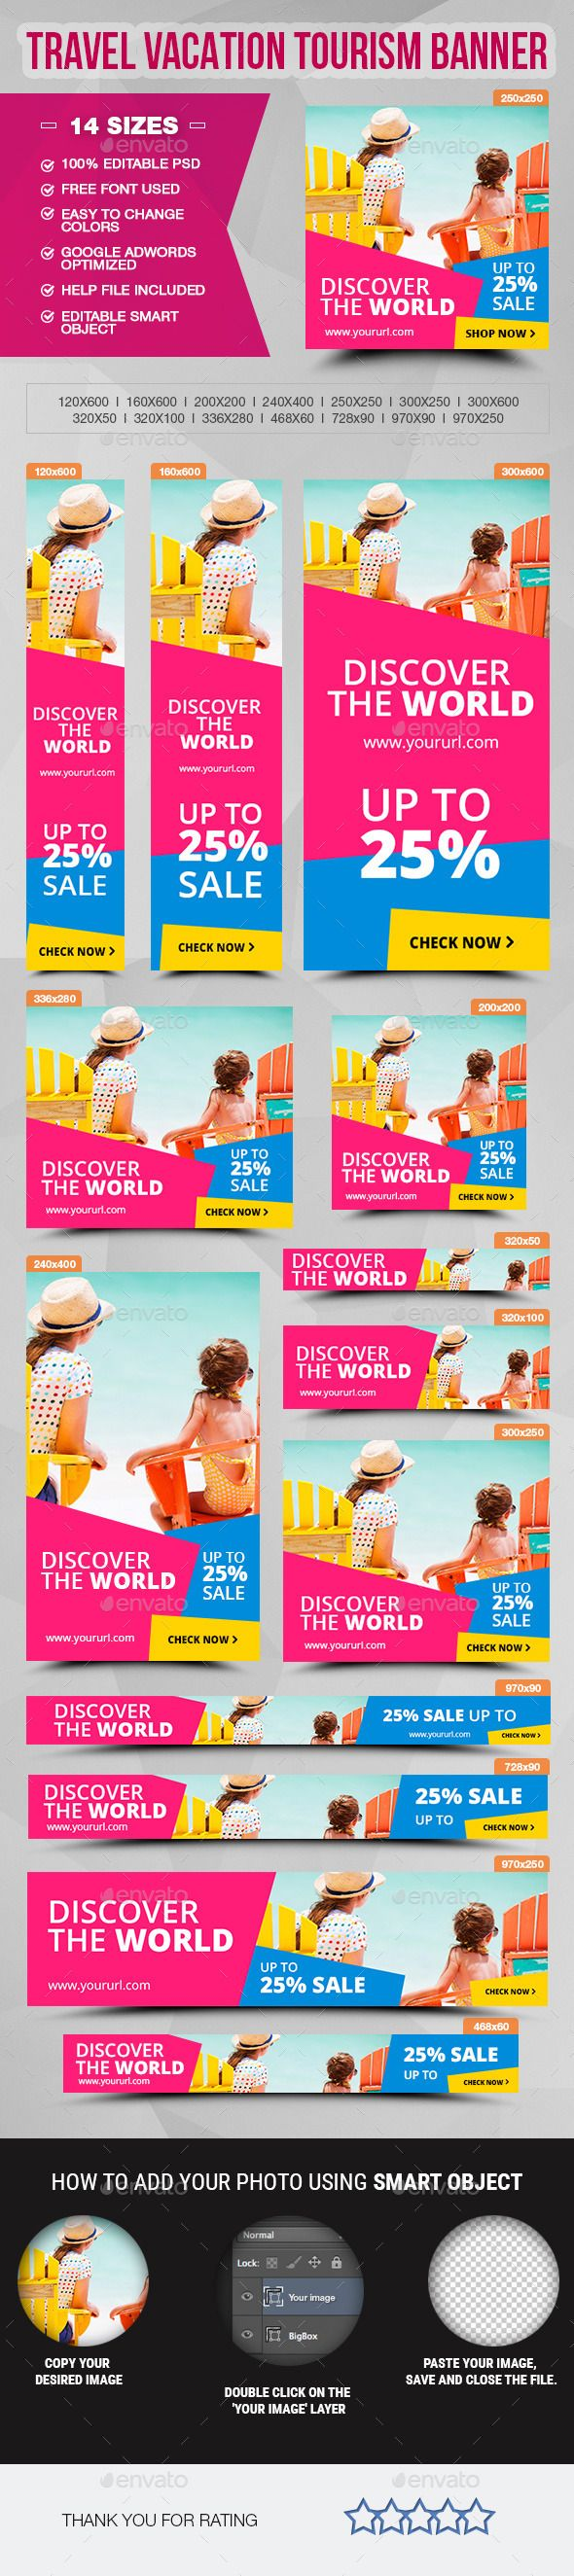 Travel Vacation Tourism - Ads Banner Template #design #web #ads Download: http://graphicriver.net/item/travel-vacation-tourism-ads-banner/12683548?ref=ksioks